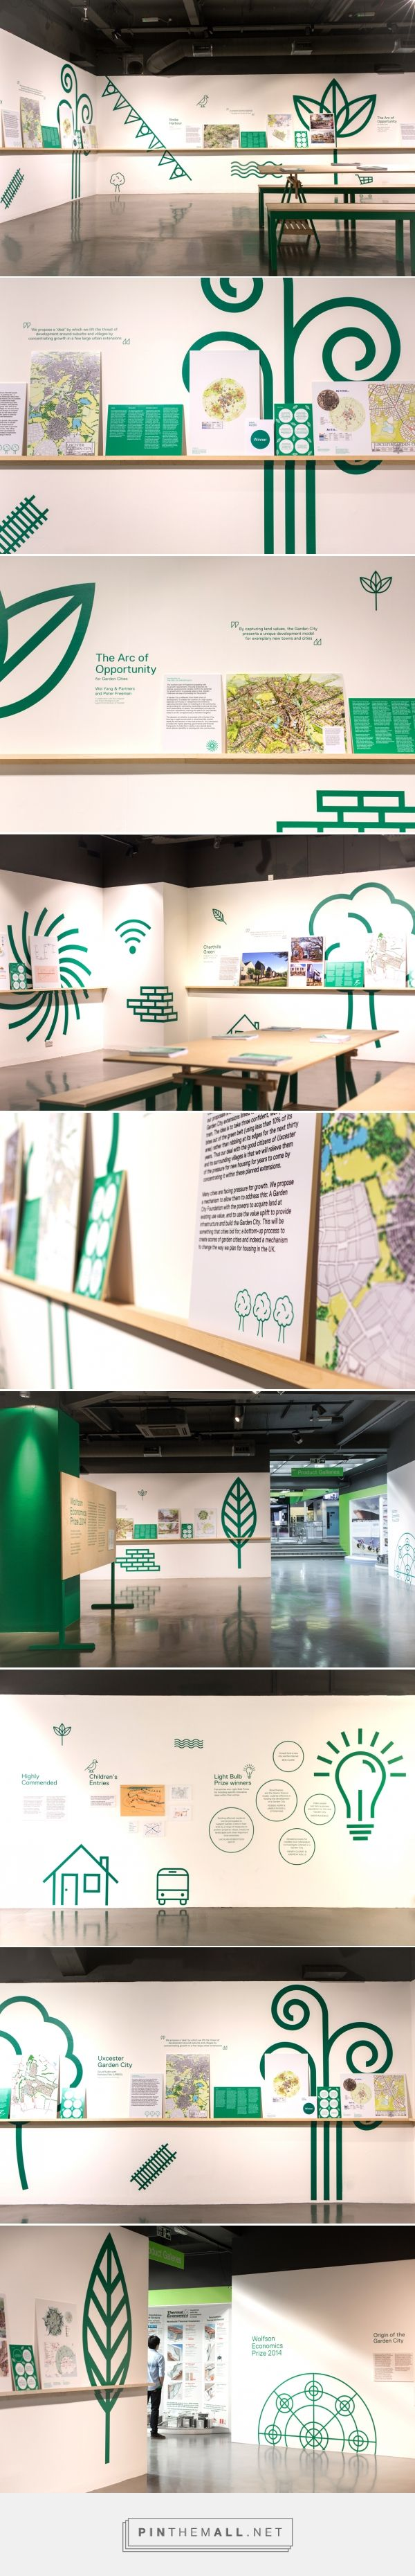 Wolfson Economic Prize Exhibition | Them... - a grouped images picture - Pin Them All